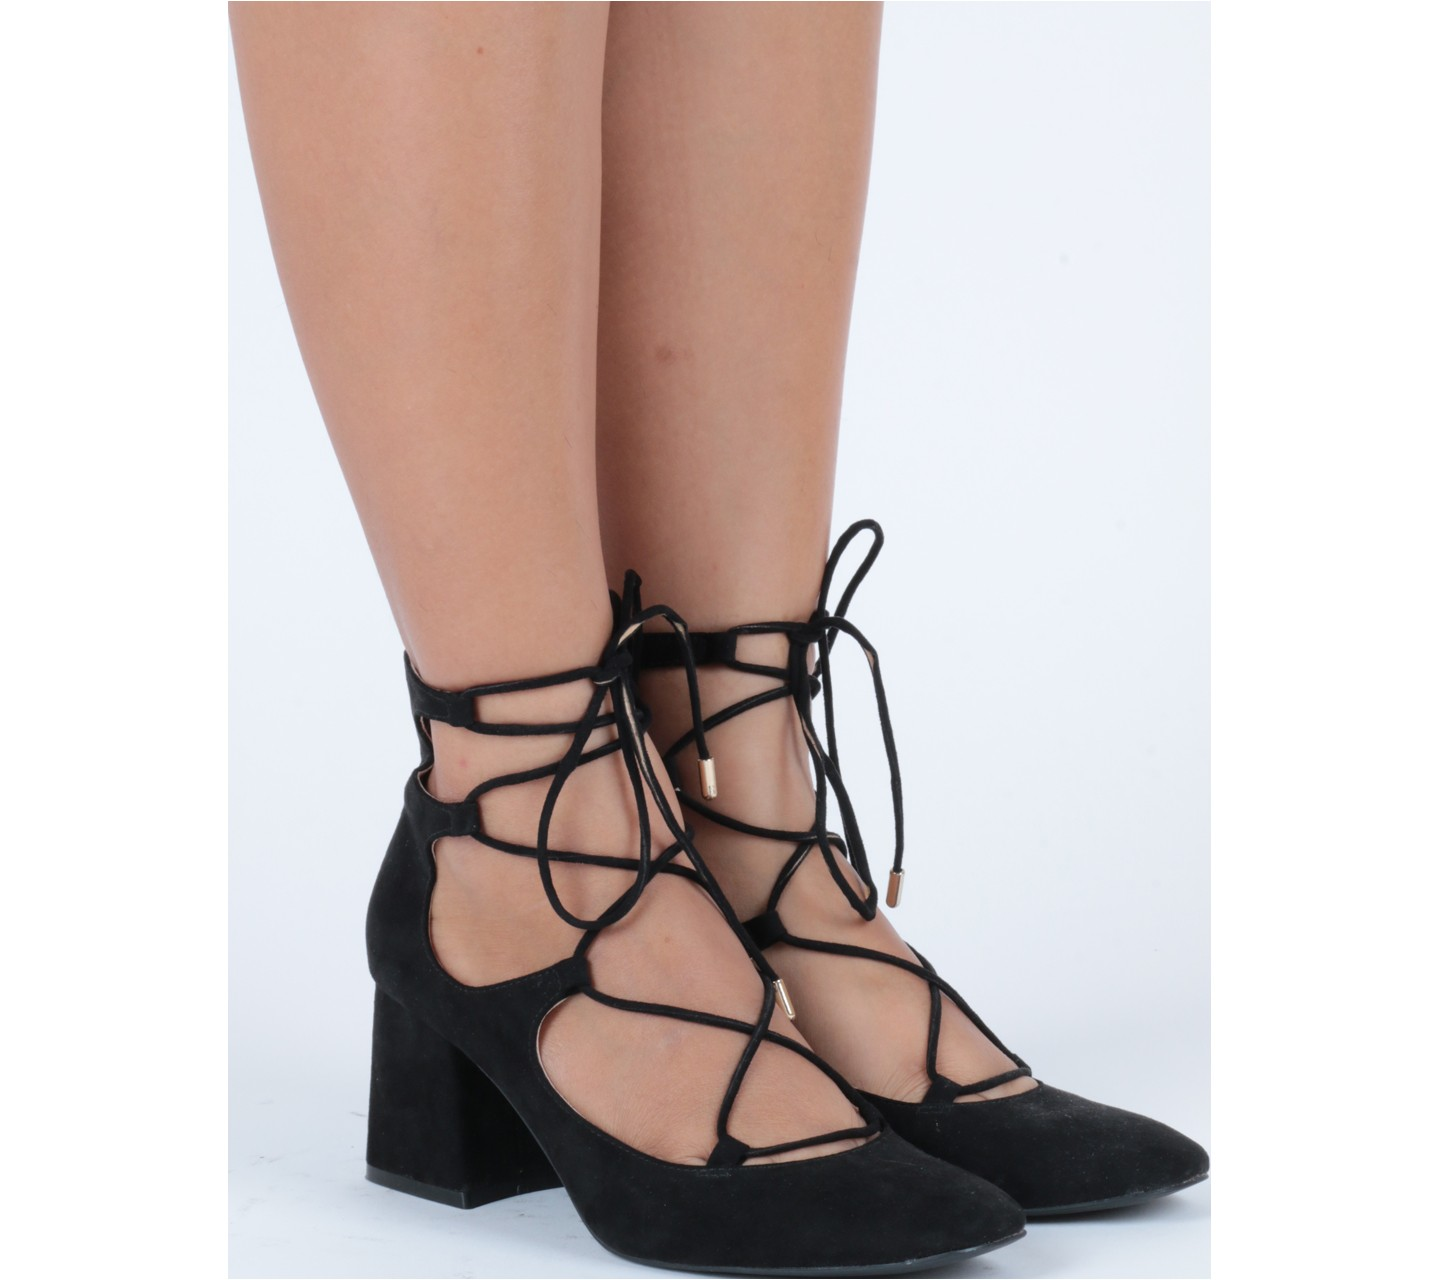 Zara Lace Up Heels fHgeOmdK